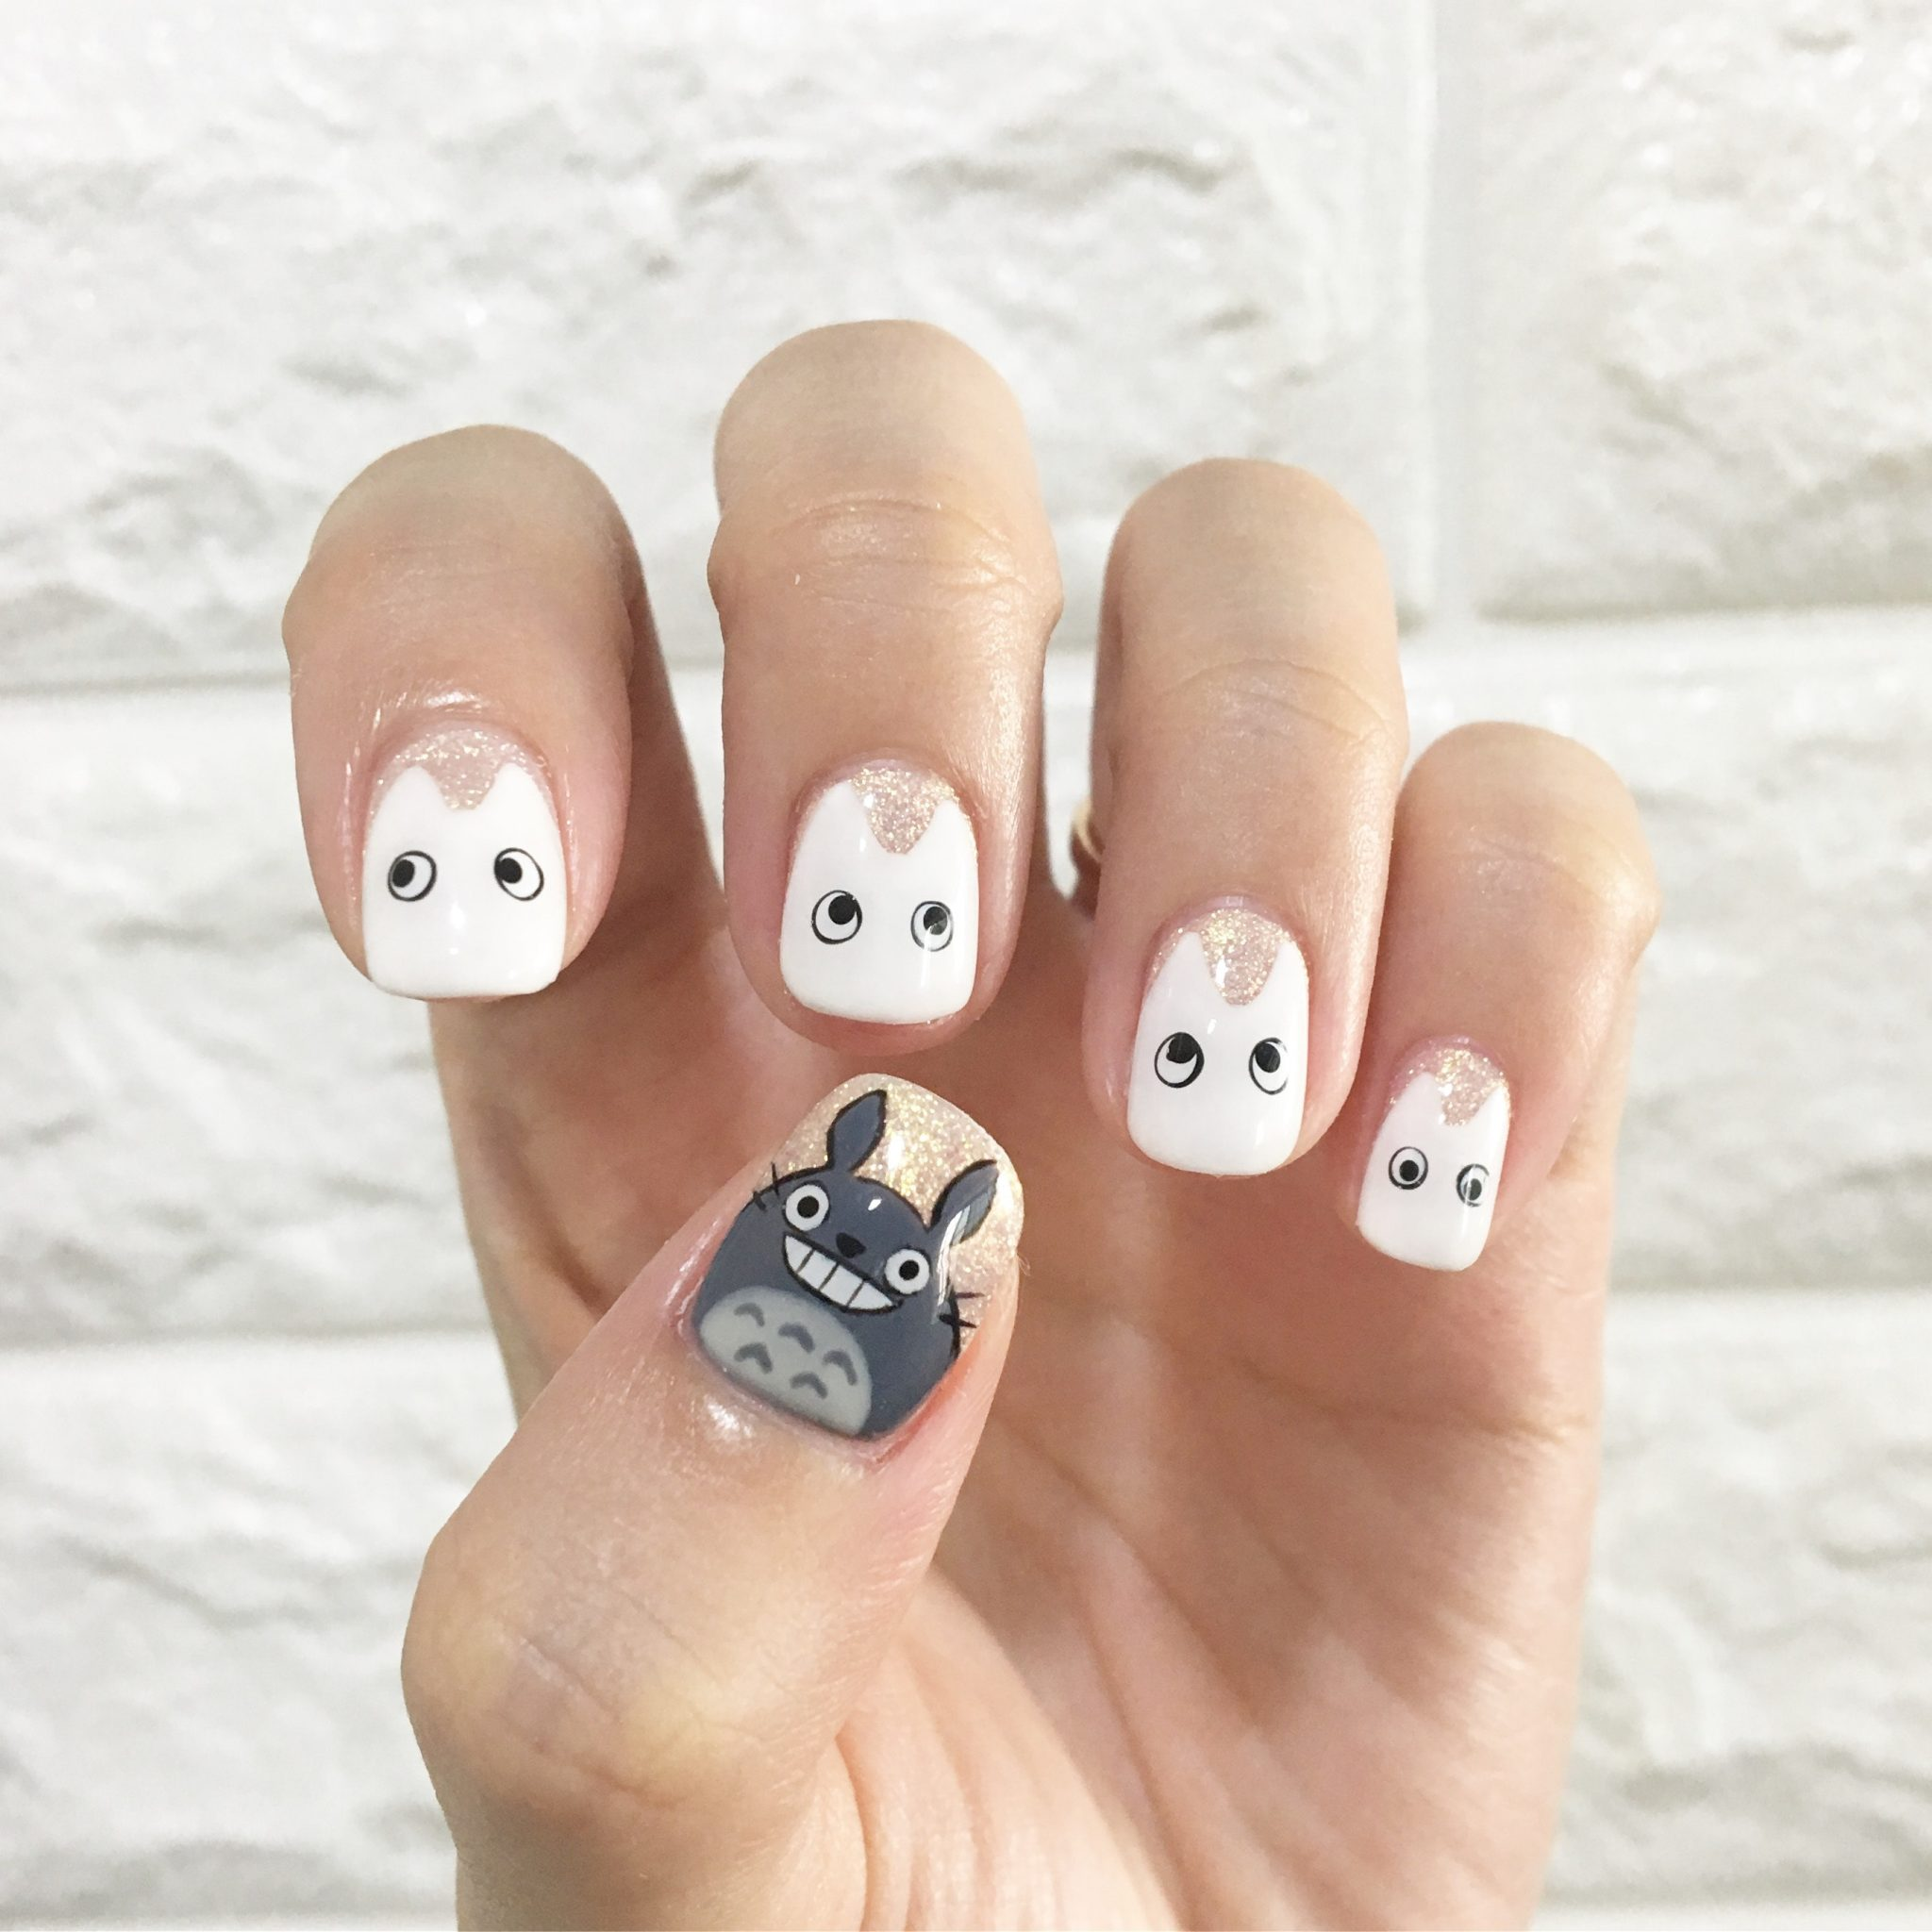 Girl's Fingers painted with the best white nail polish and draw some art on it